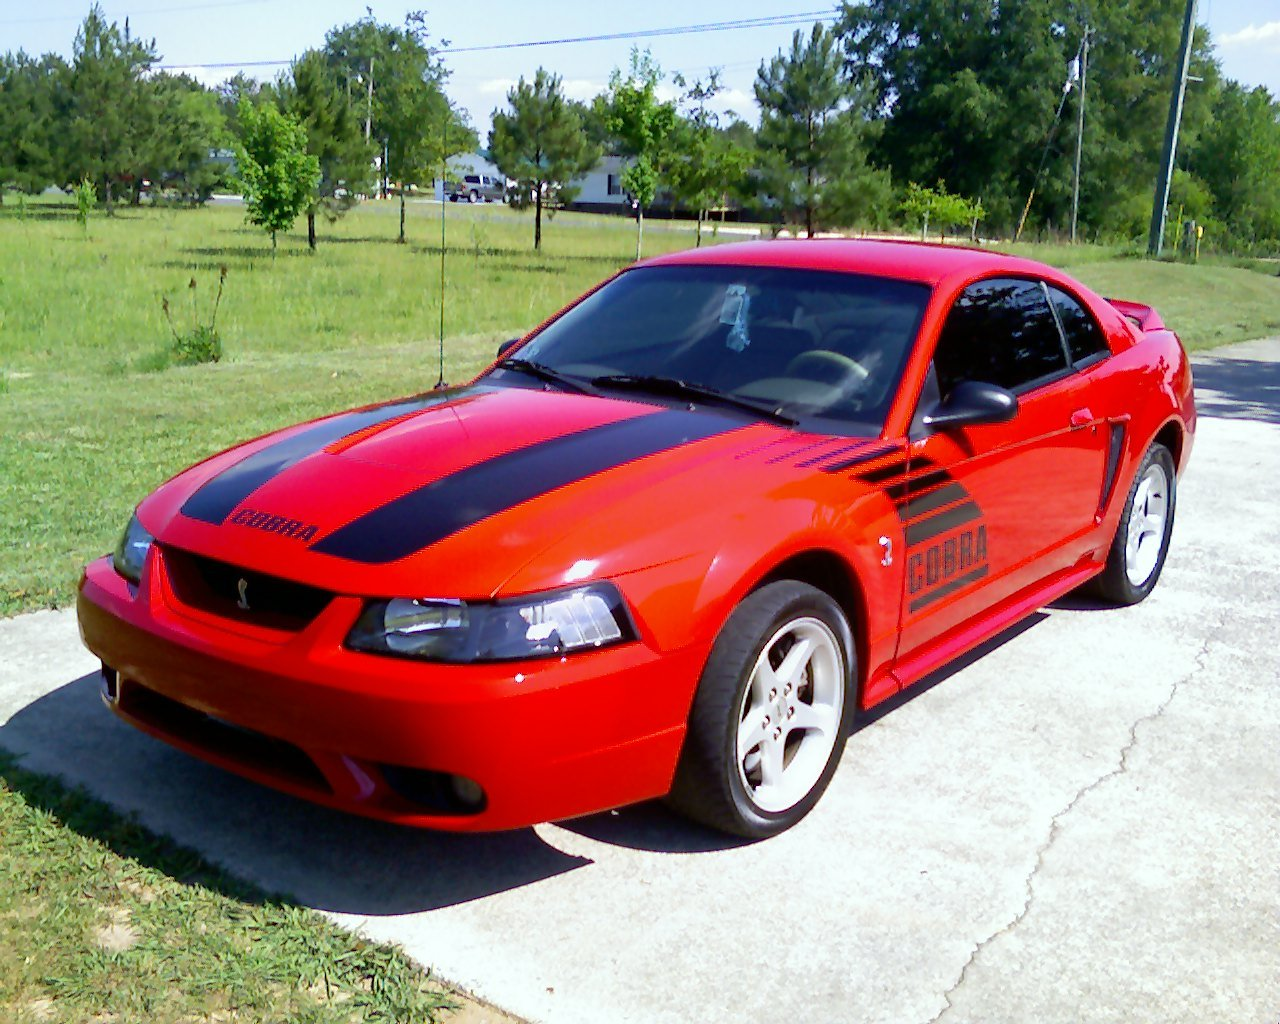 Best mods for a 2001 cobra ford mustang forum